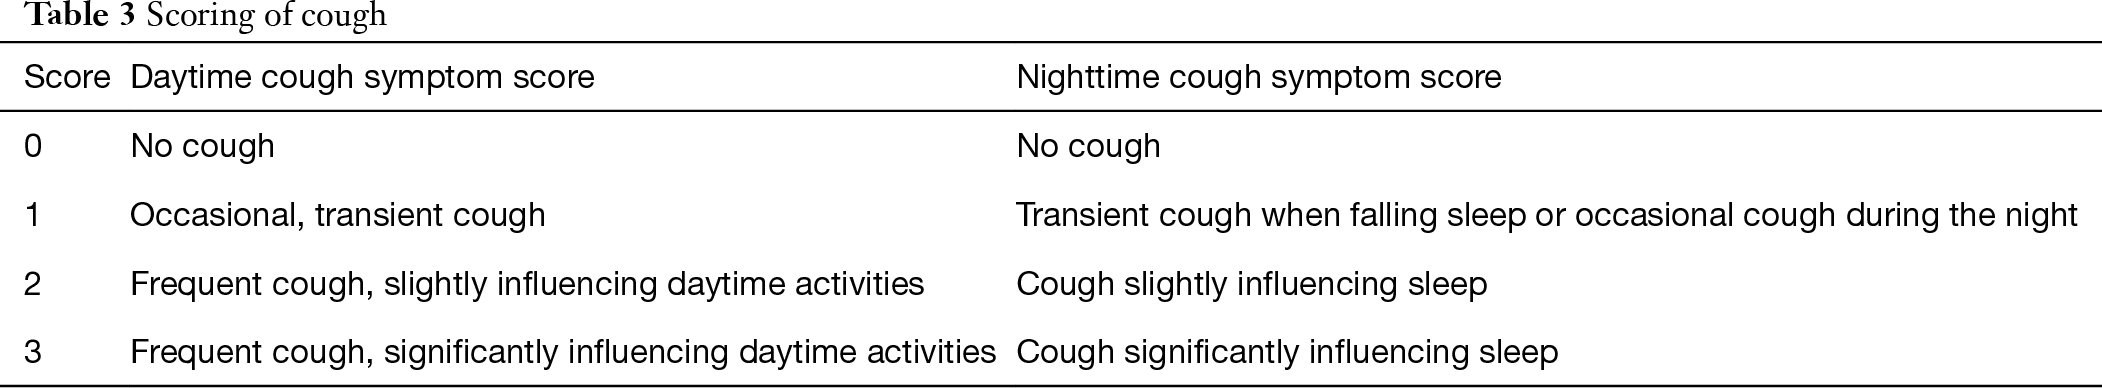 Clinical Practice Guidelines for Diagnosis and Management of Cough